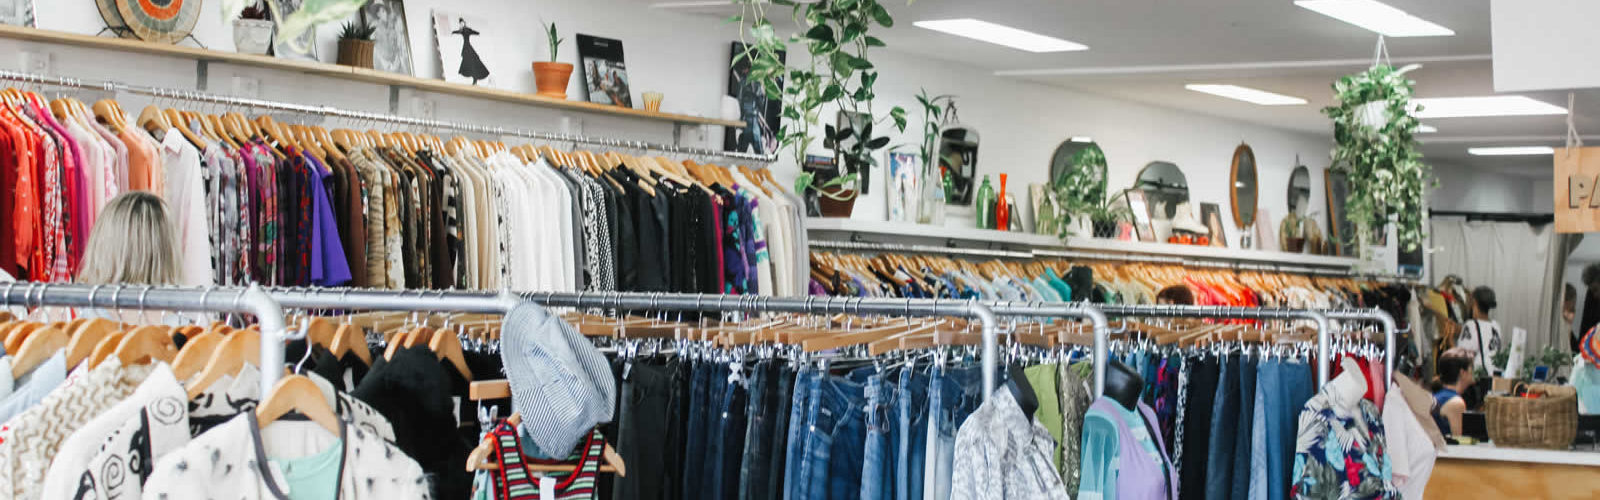 meilleures-friperies-discount-fripes-brooklyn-une